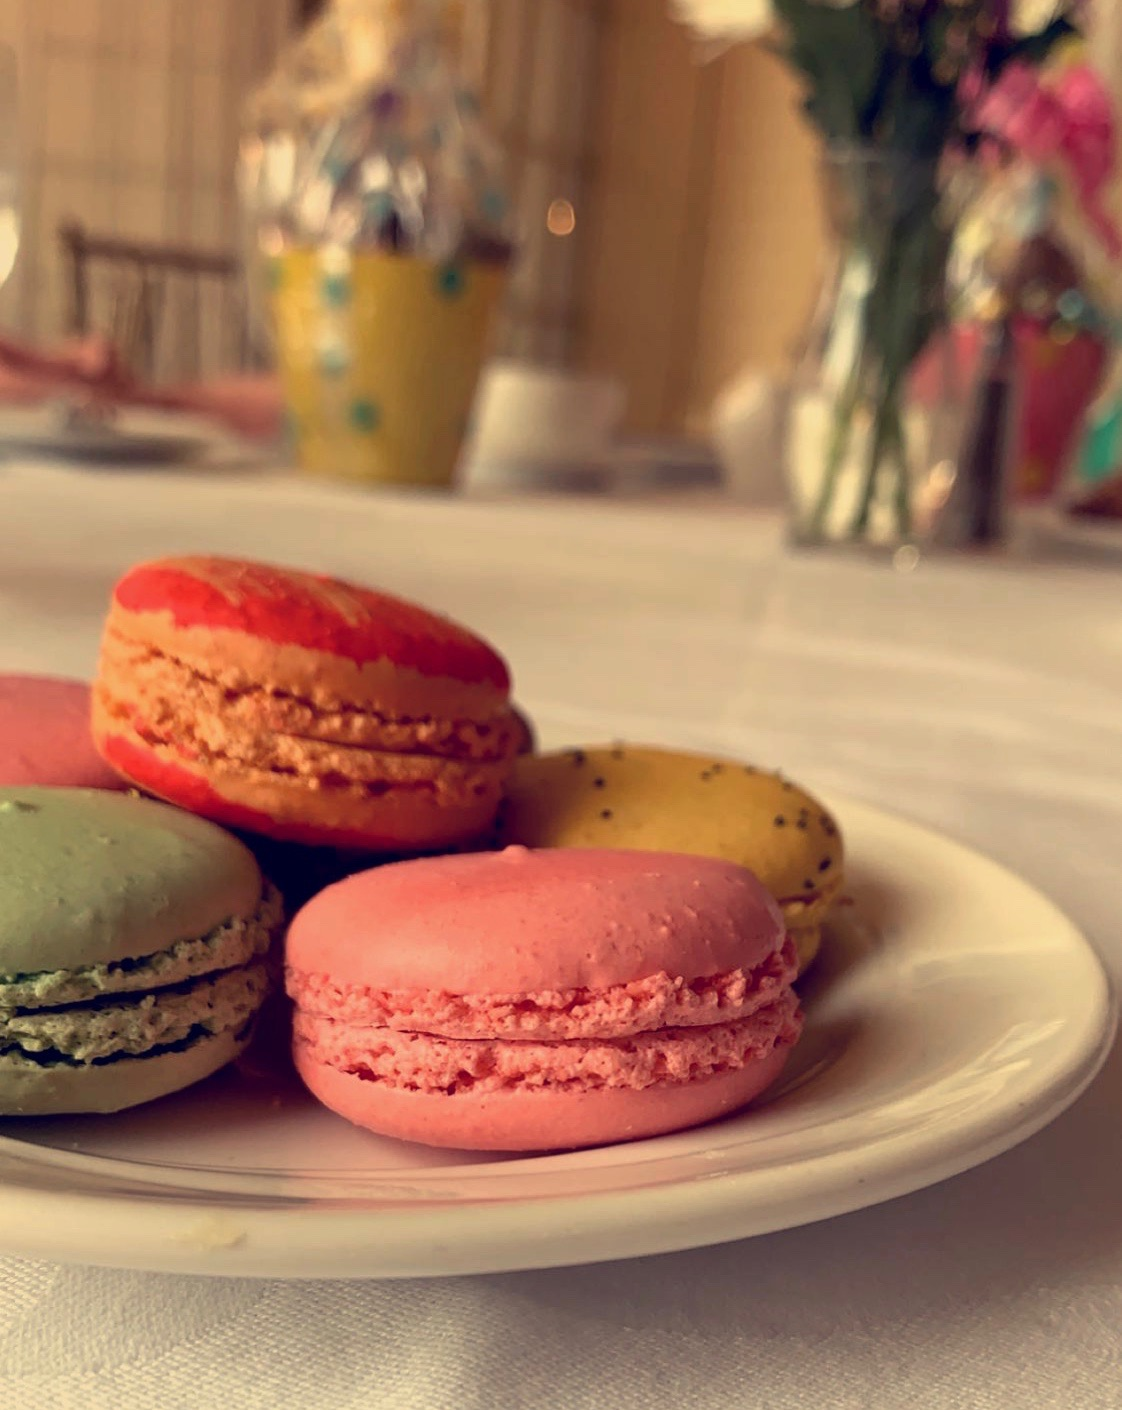 %E2%80%9CI+was+having+brunch+with+my+family+and+was+immediately+drawn+to+those+macarons.+All+the+different+bright+colors+and+the+way+they+were+positioned+on+the+plate+made+it+the+perfect+opportunity+for+a+photo.%E2%80%9D